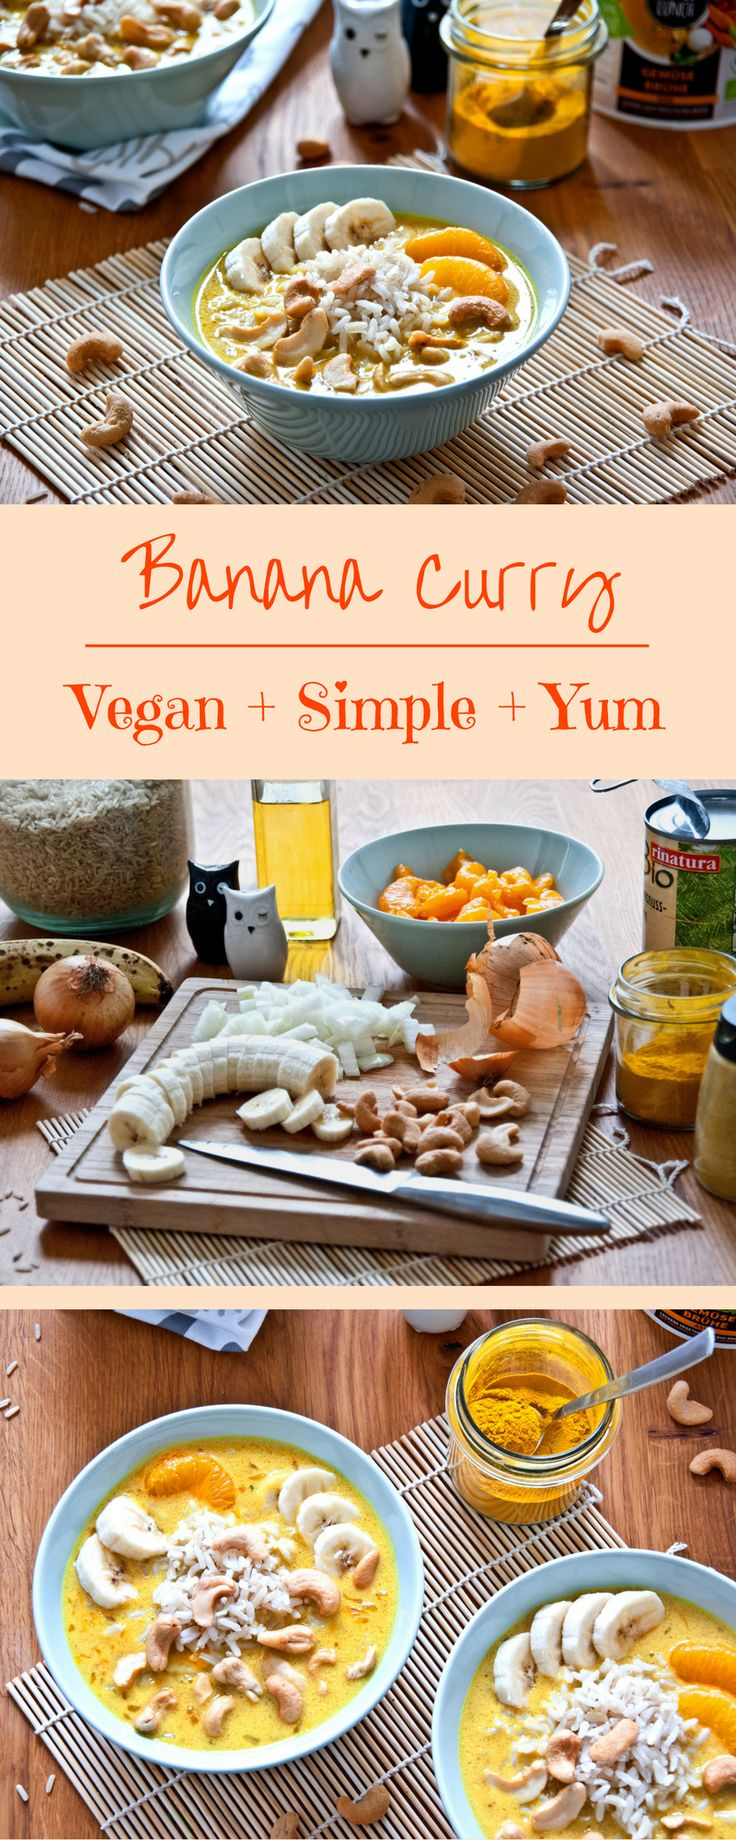 Super simple vegan banana curry with coconut, tangerines and whole grain rice